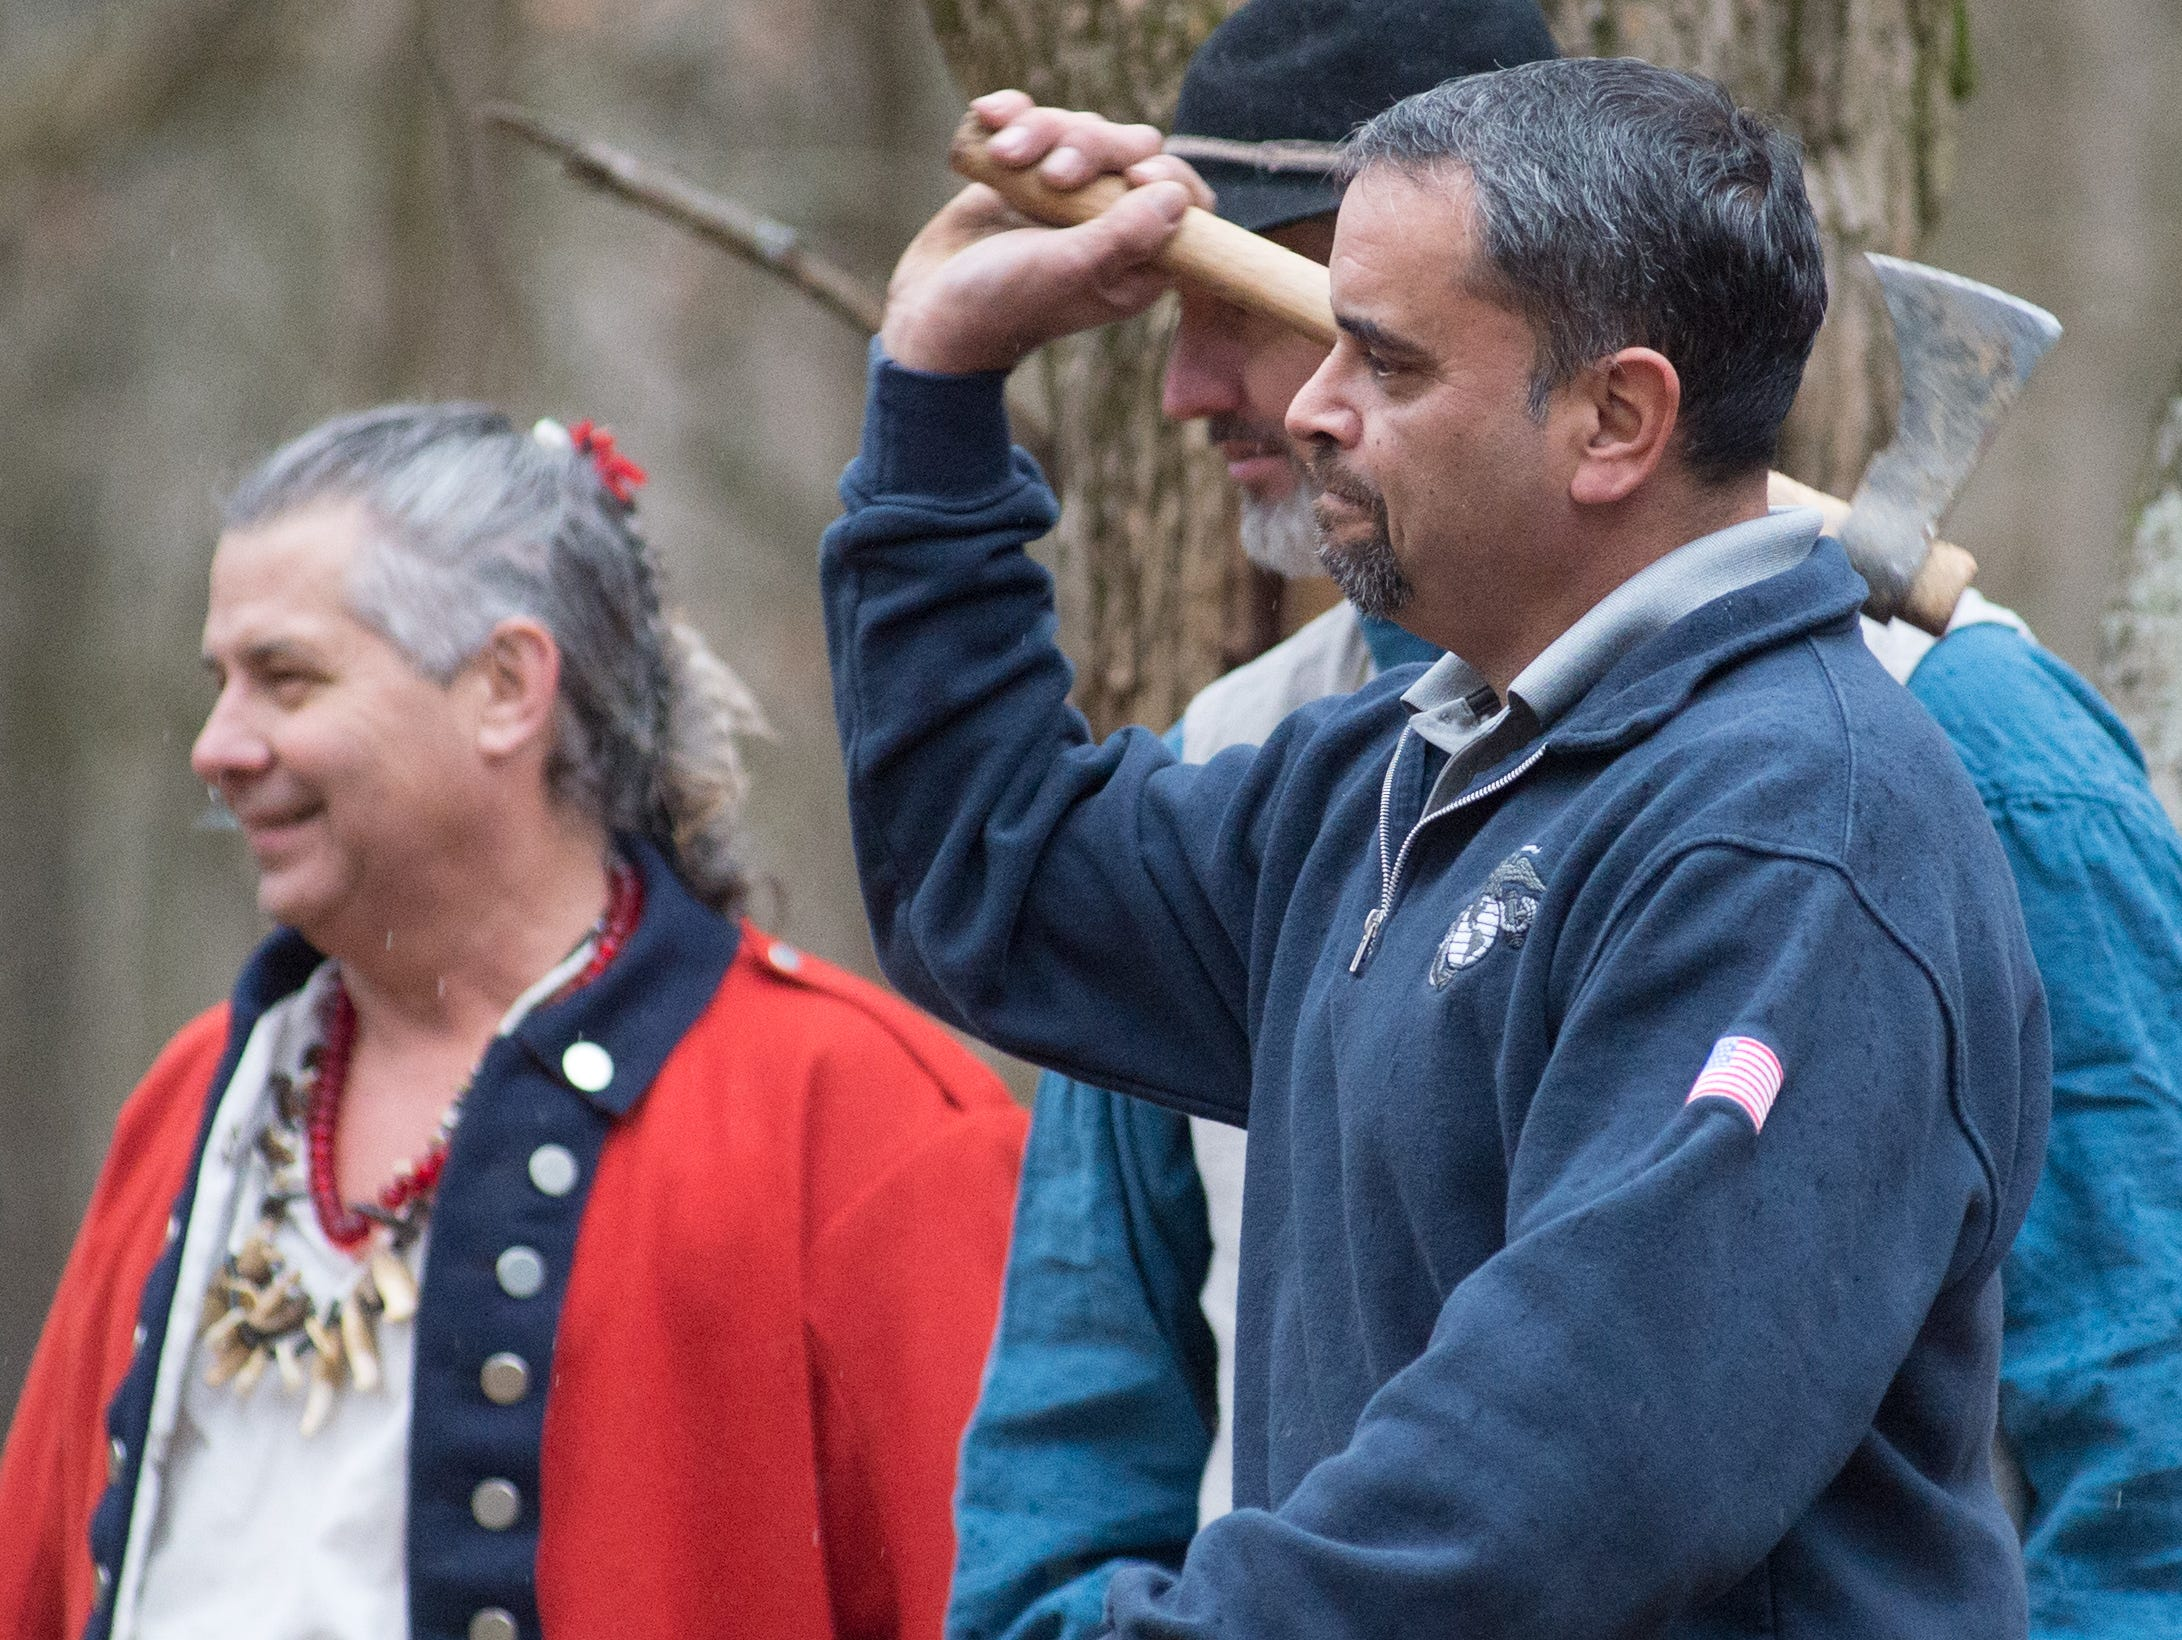 River Pollington participates in a Tomahawk Throwing for Beginners event hosted by Middle Tennessee History Coalition at Bledsoe Creek State Park on Saturday, Jan. 12.